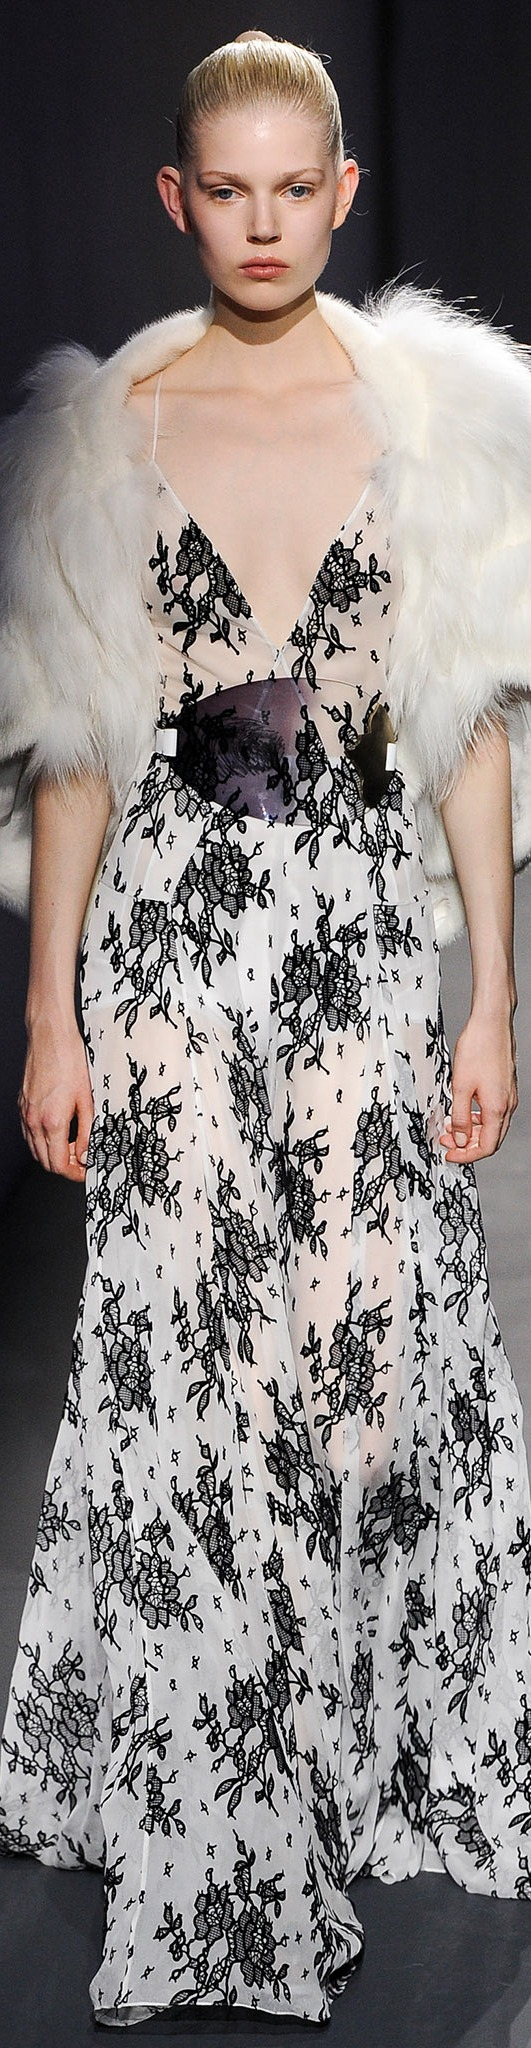 #Vionnet Collection Spring 2015 #Ready-to-Wear